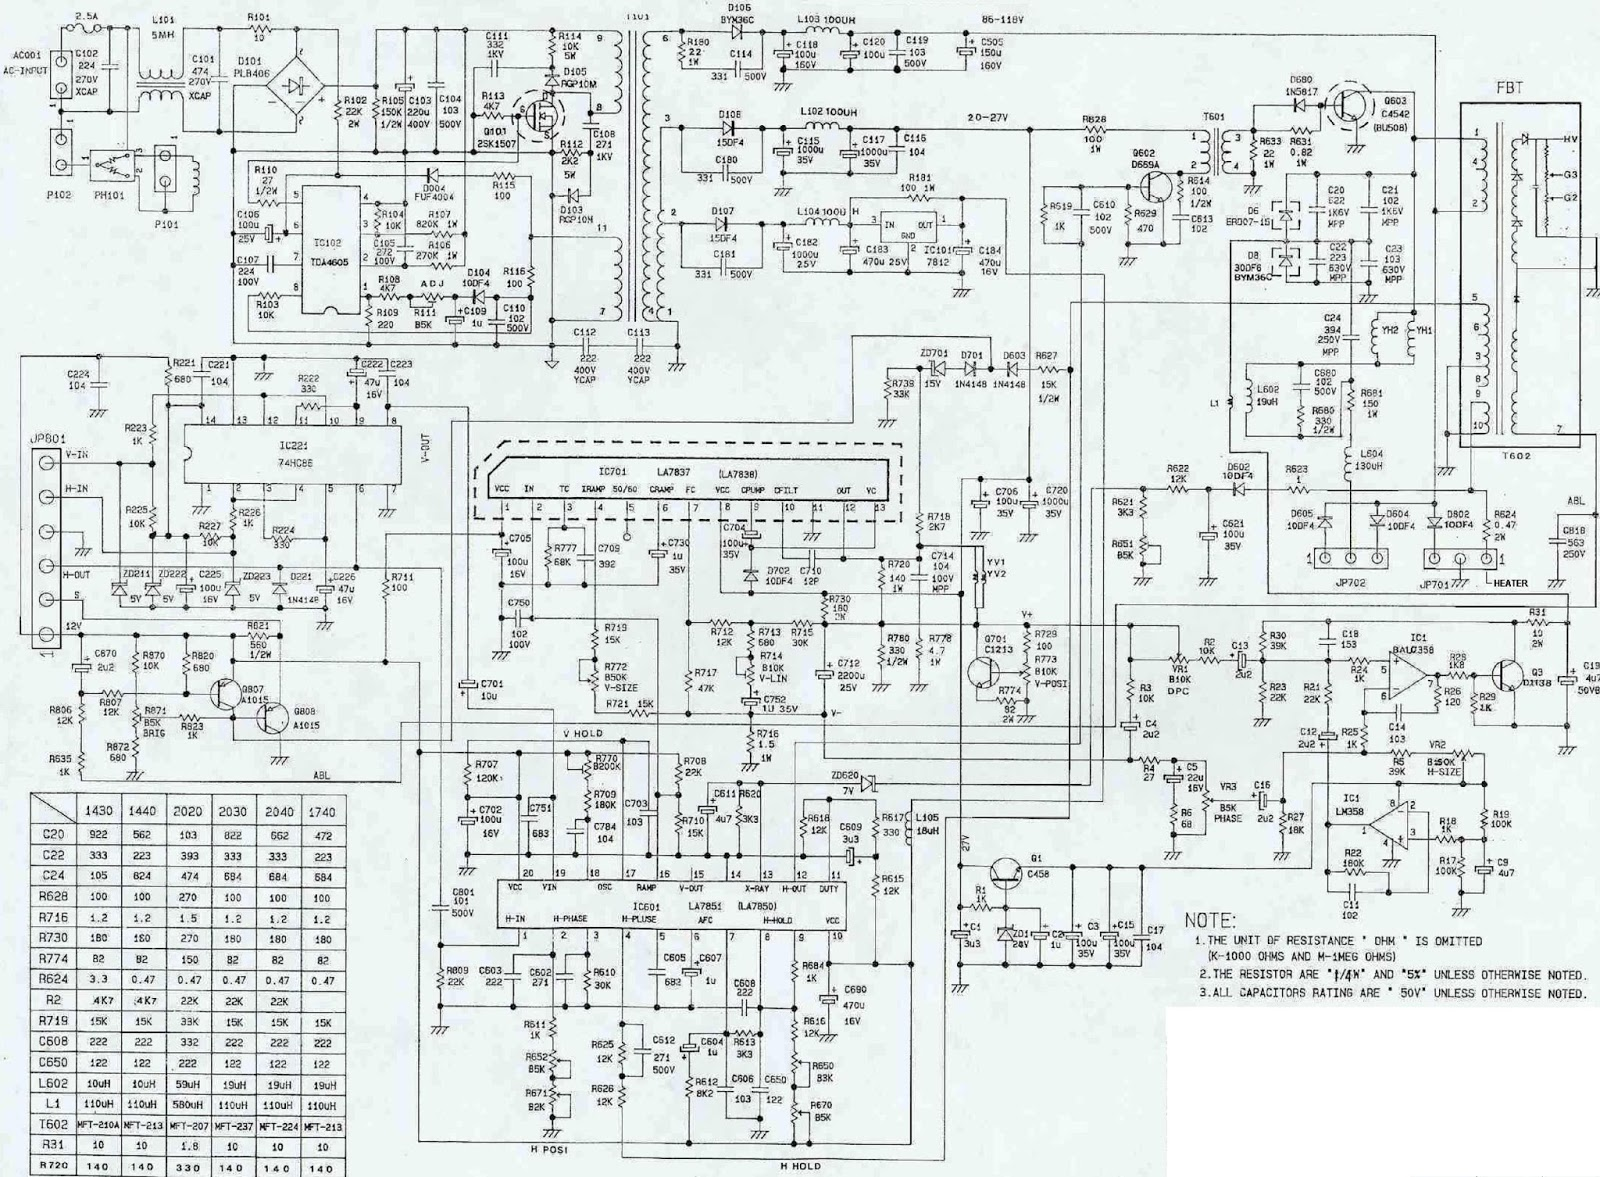 Electro help: SONY PLAYSTATION3  SCHEMATIC DIAGRAM [Click on Schematic to Zoom In]